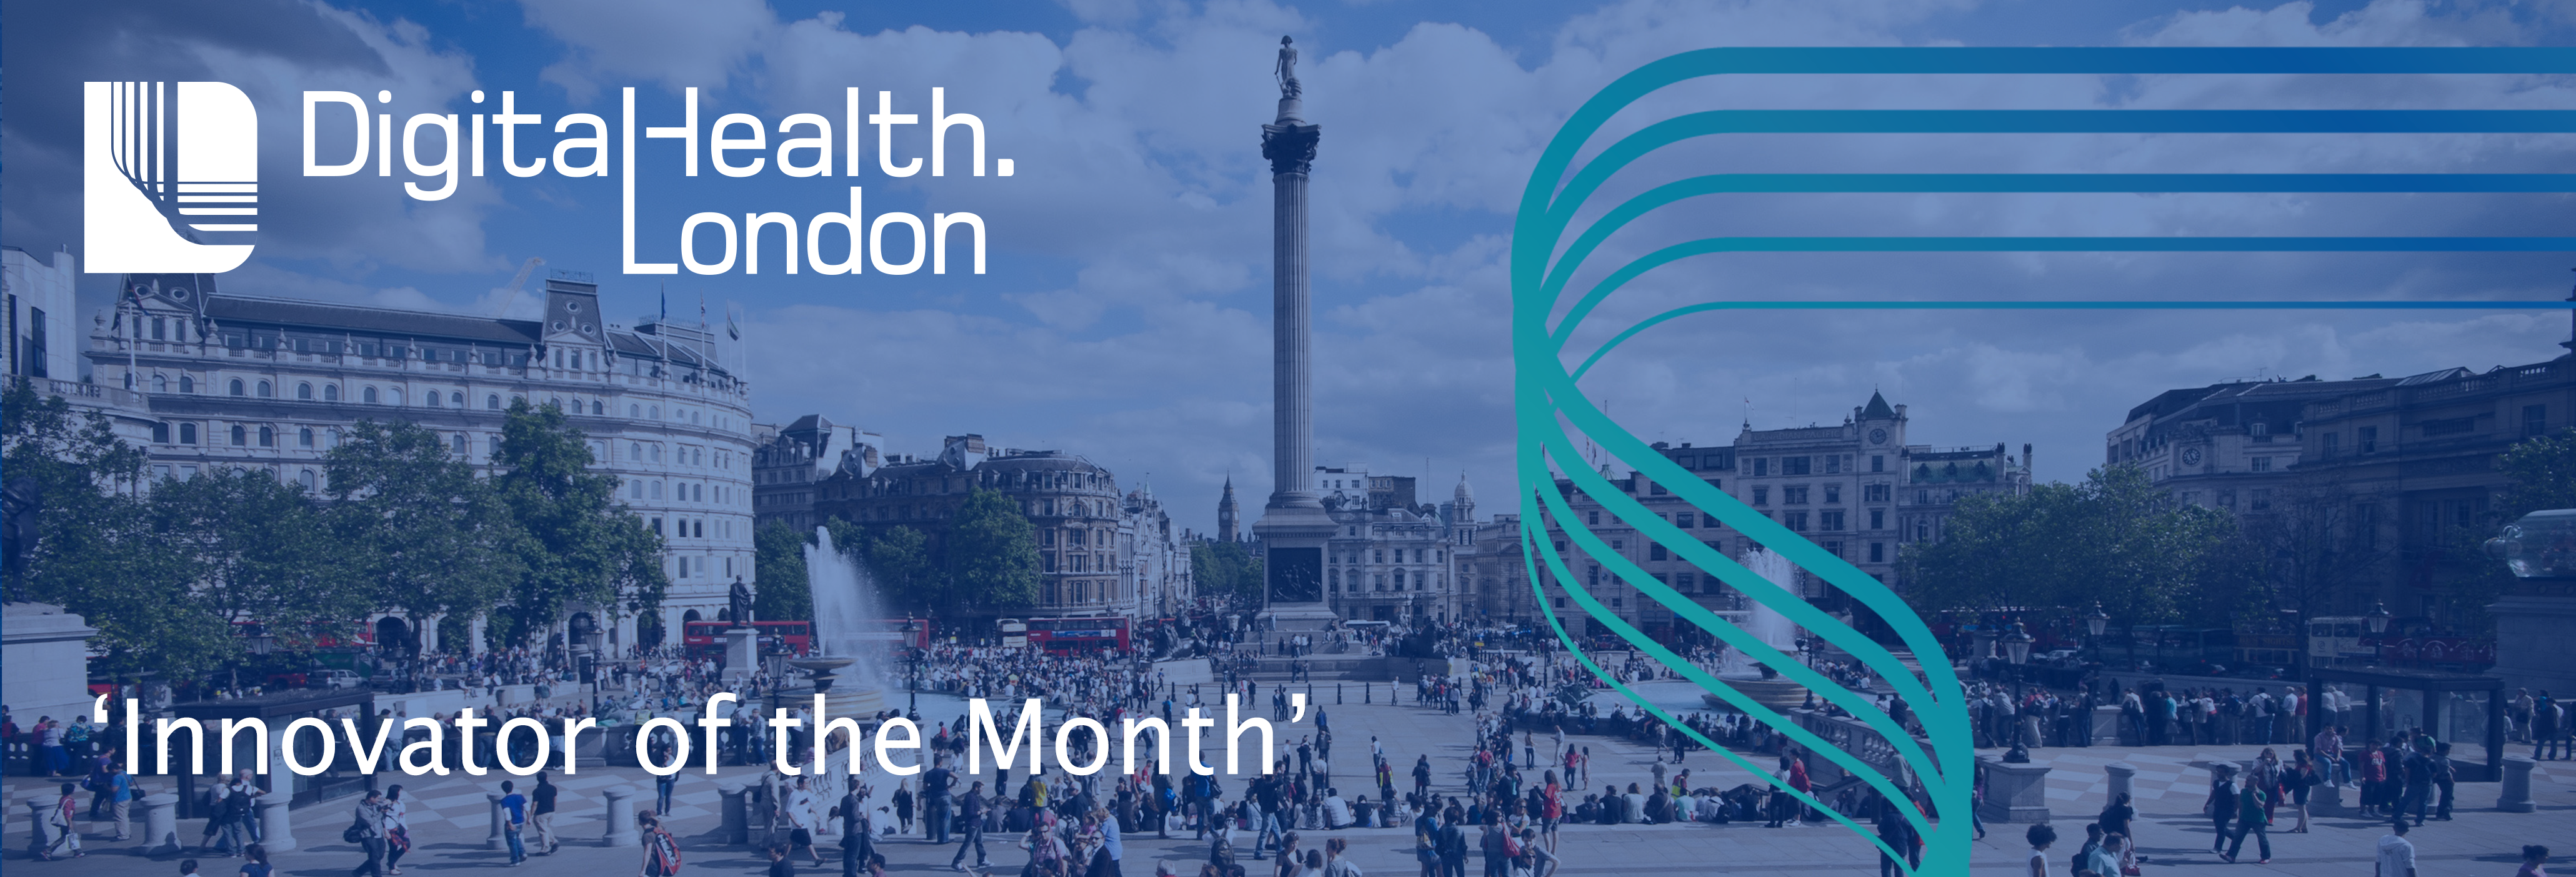 Innovator-of-the-Month